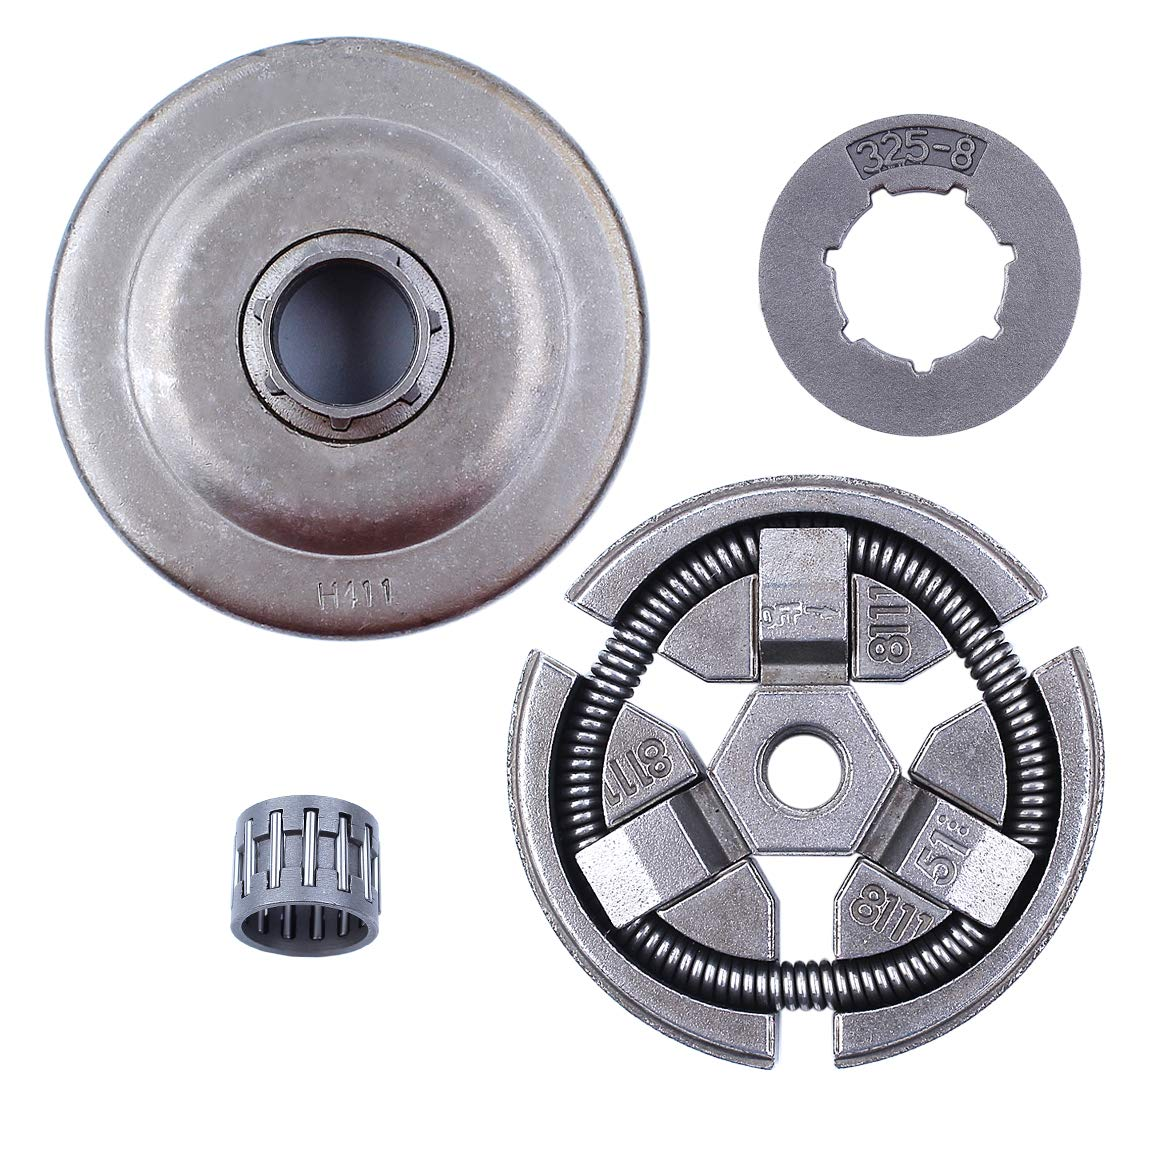 Clutch Drum Needle Bearing Fit Stihl 017 018 025 MS170 MS180 MS250 Chainsaw Part